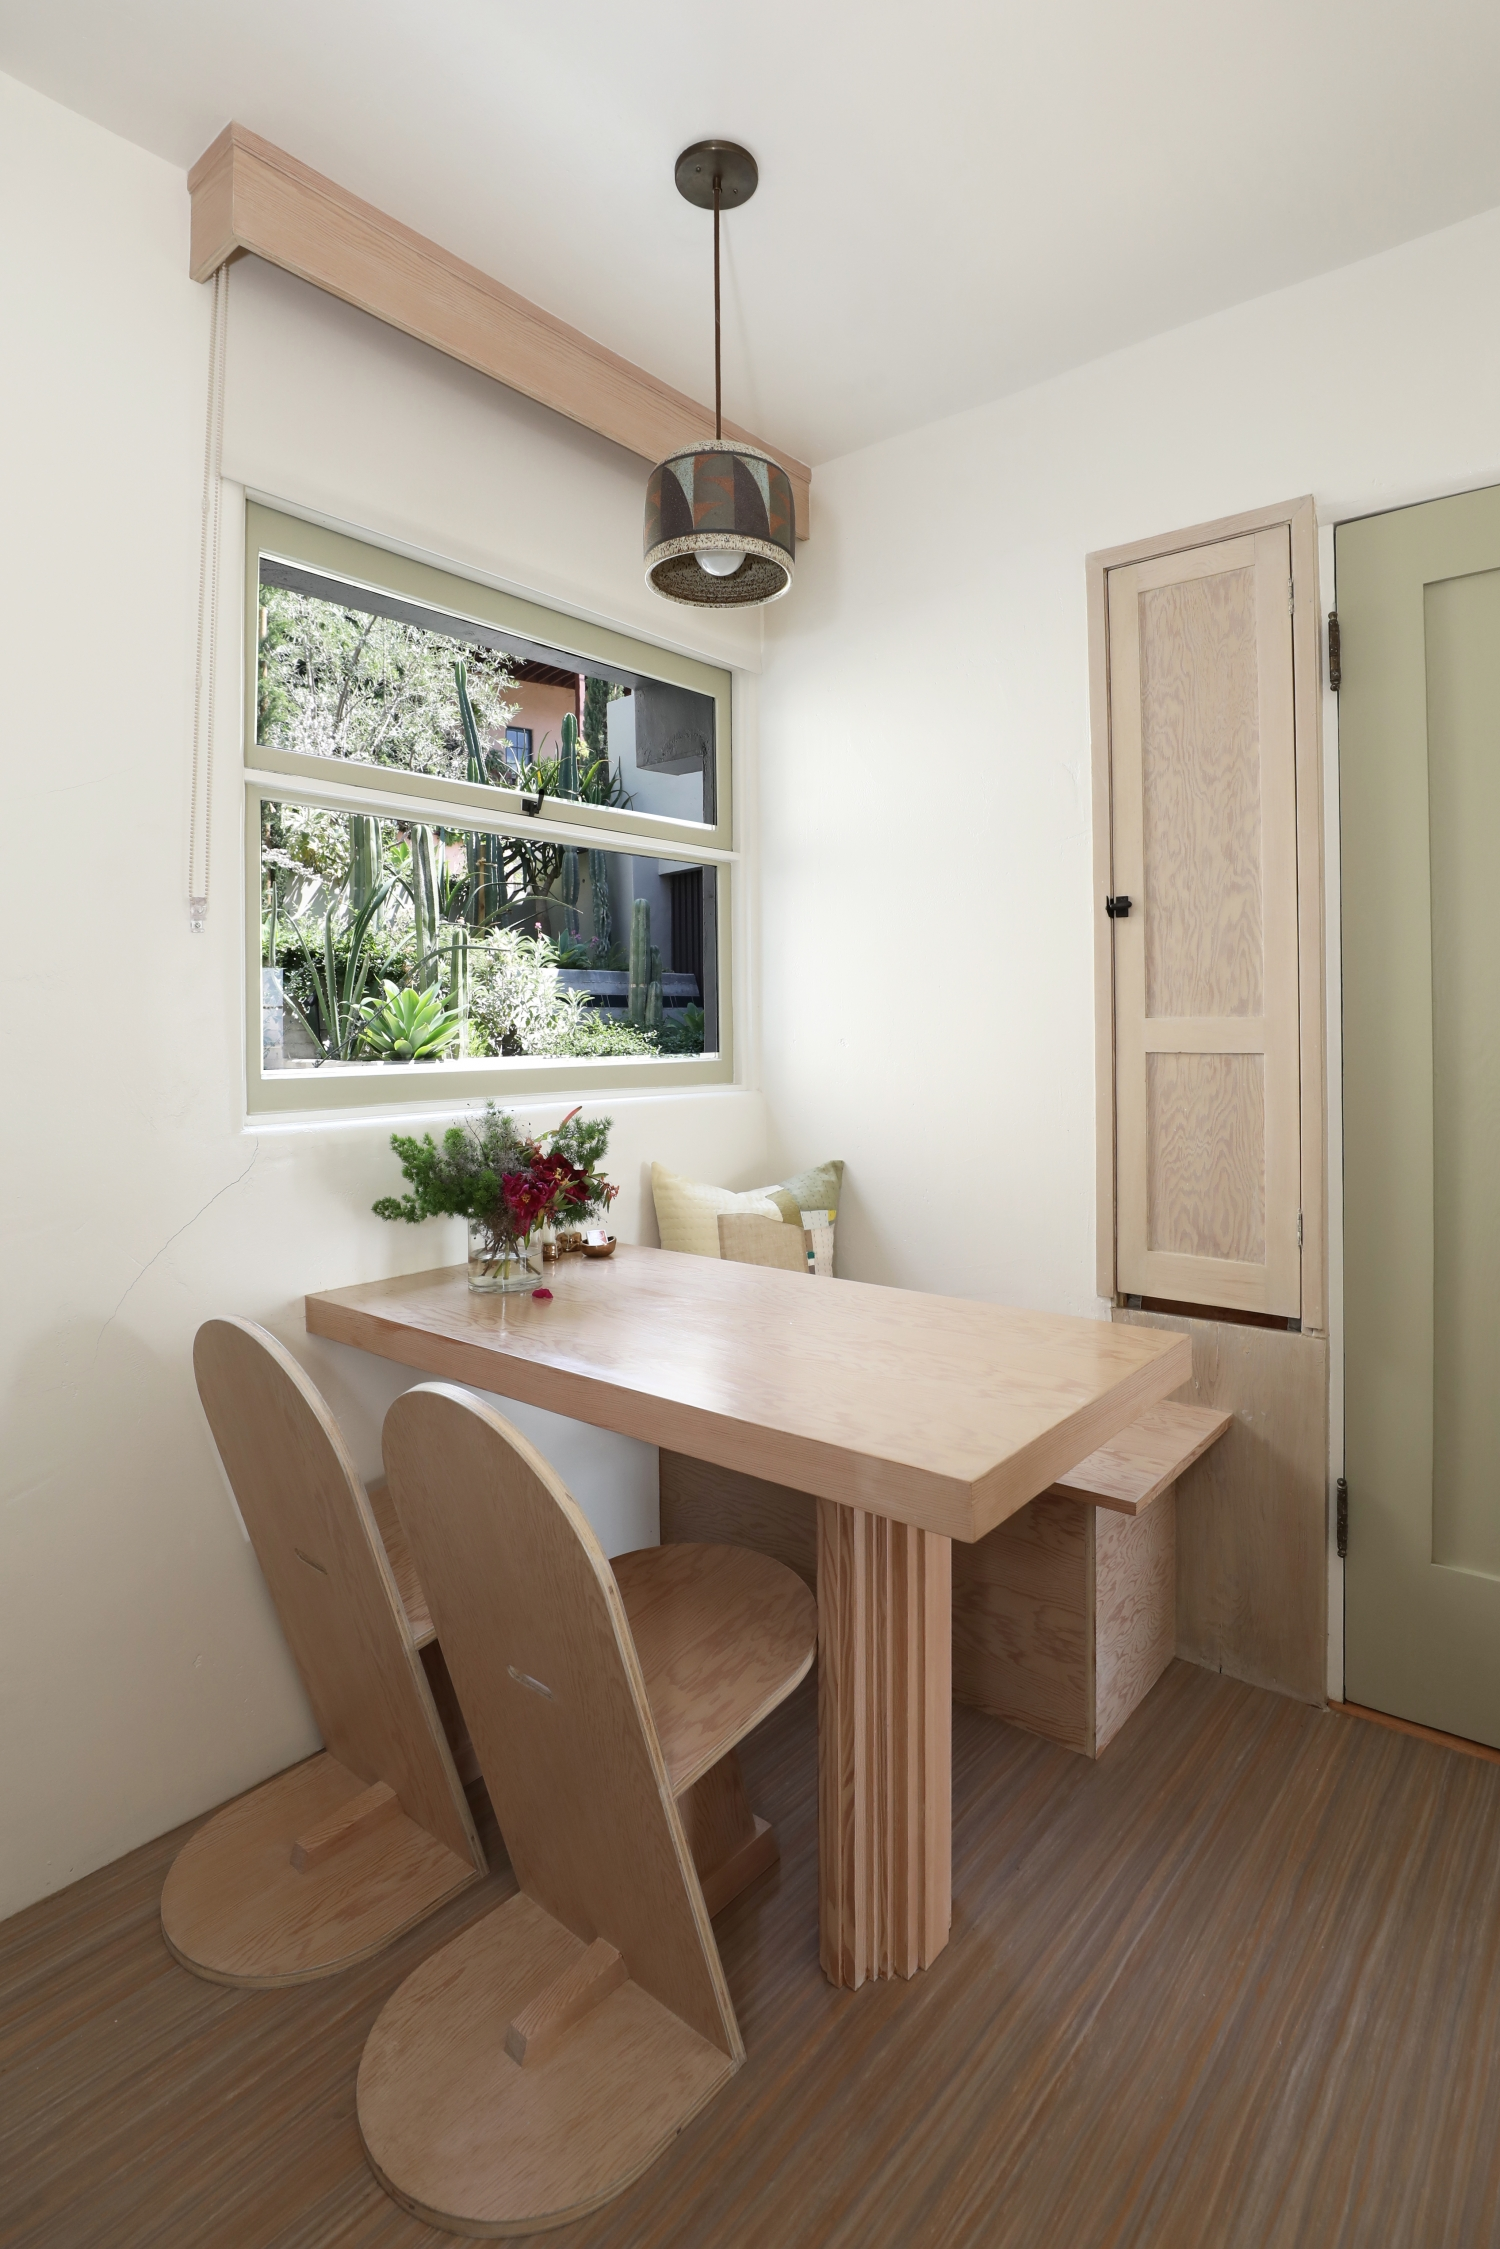 The dining nook in the Maid's Room at Manola Court, including replicas of Schindler designed table and chairs.